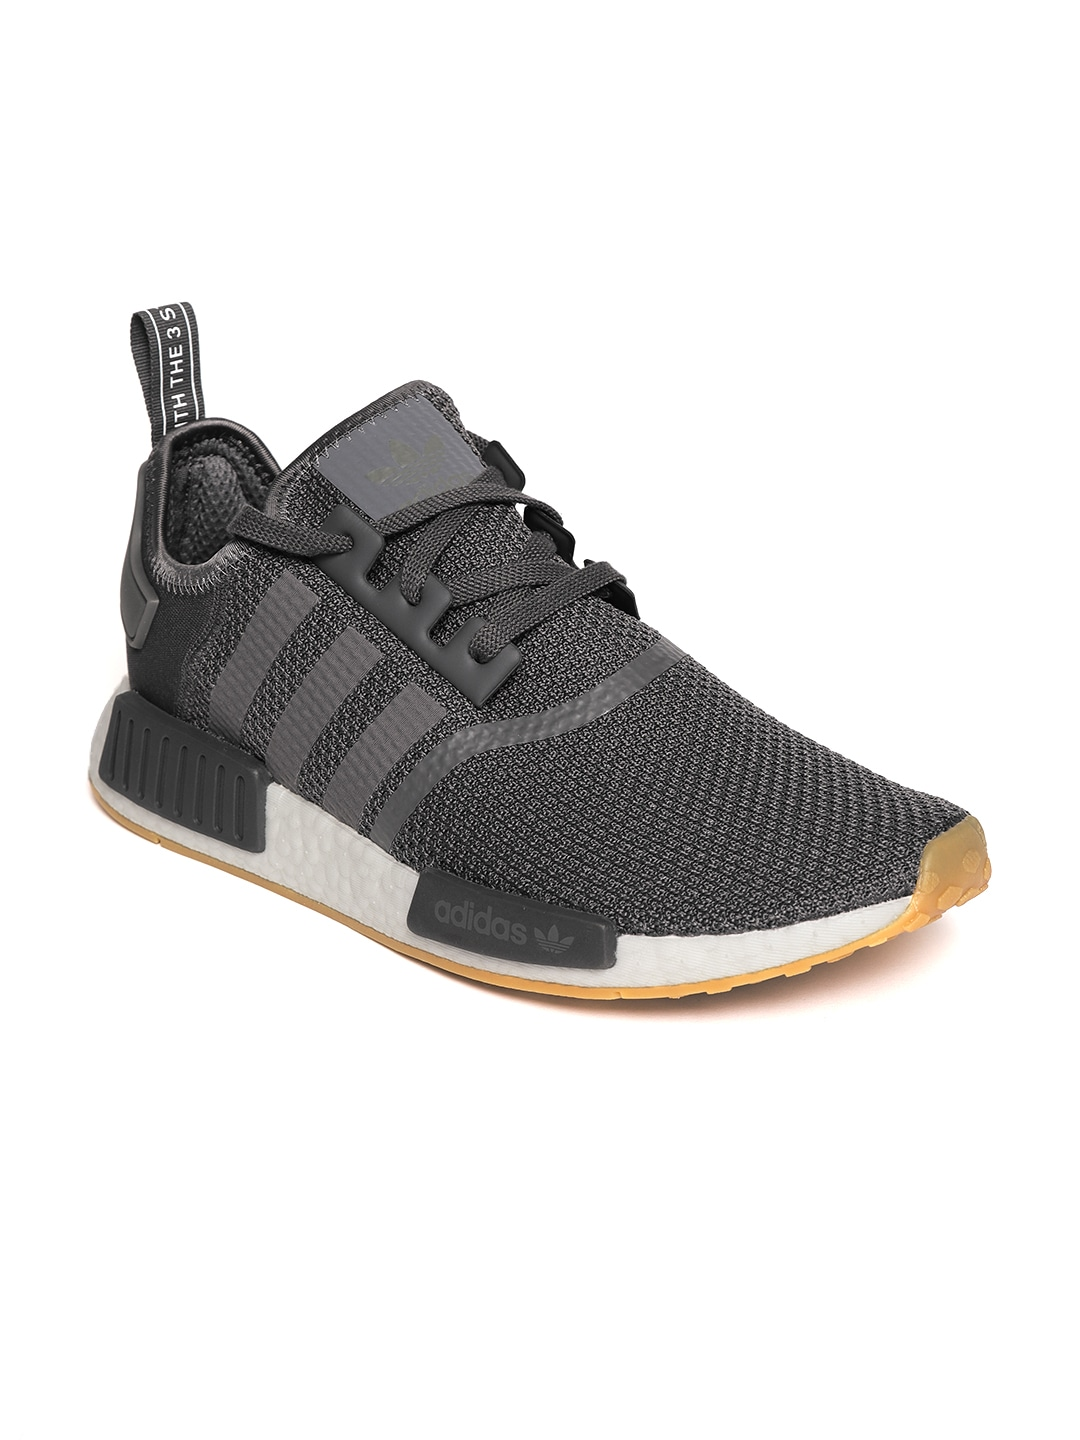 quality design f19d2 43a66 Adidas And Nike Casual Shoes Sports Innerwear Vests - Buy Adidas And Nike  Casual Shoes Sports Innerwear Vests online in India